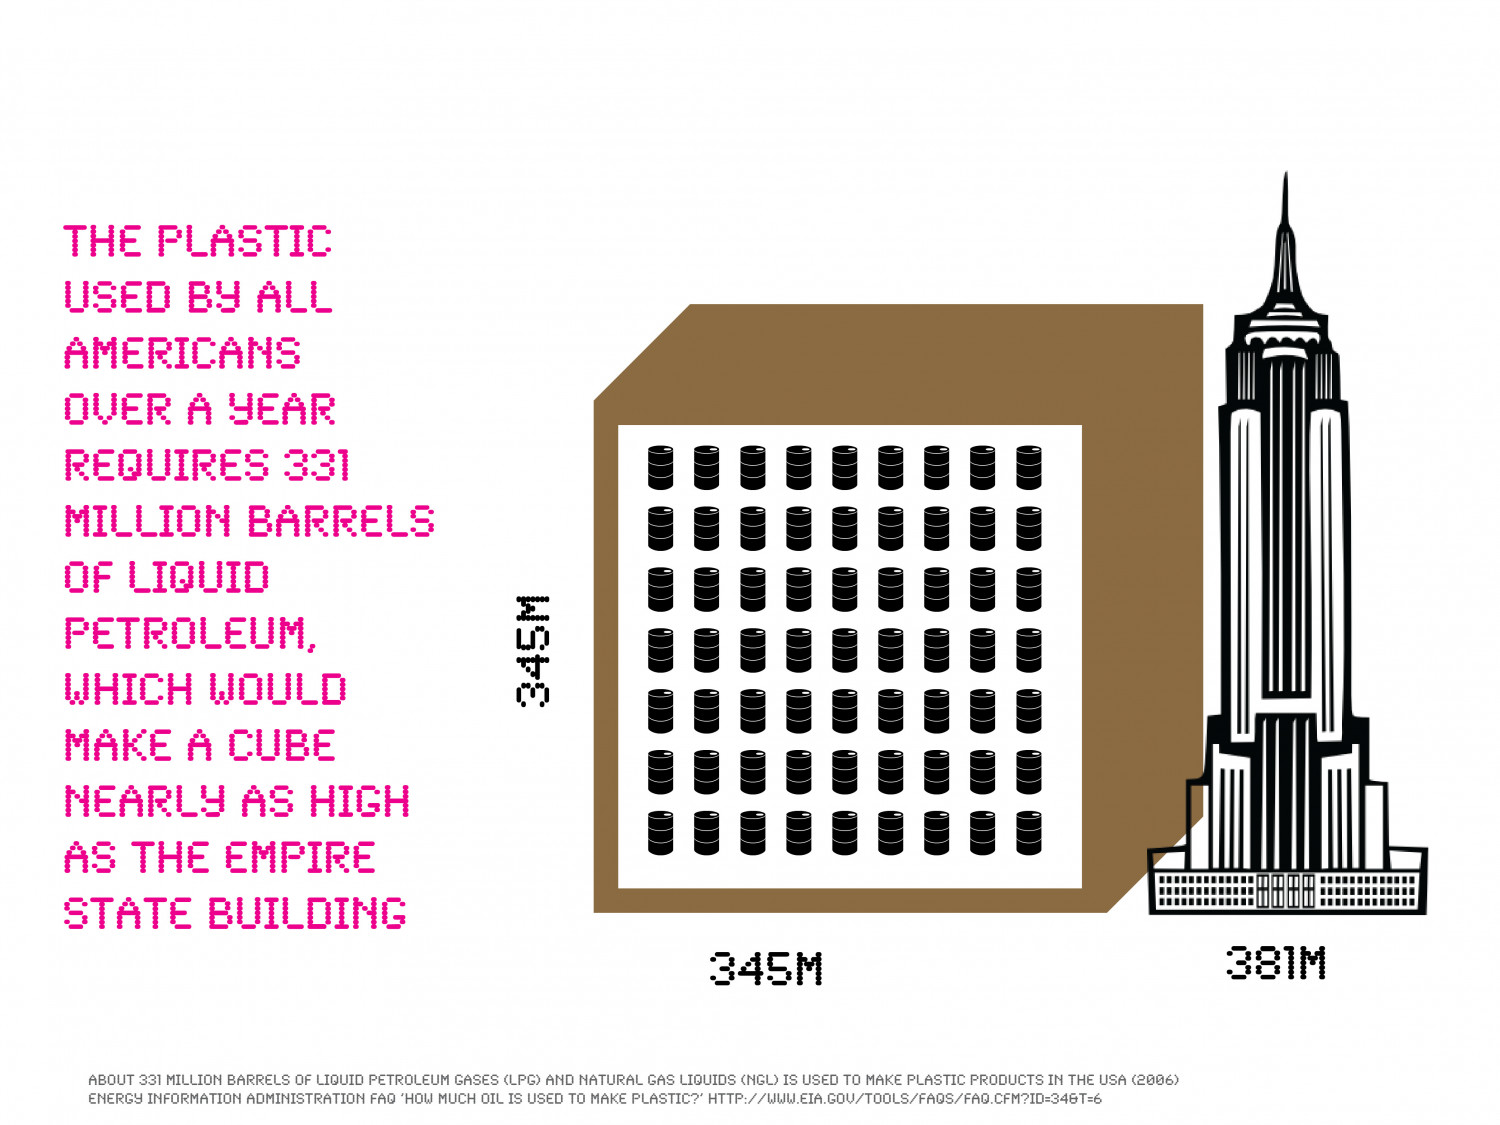 Americans use enough liquid petroleum for making plastic to create a cube nearly as high as the Empire State Building Infographic